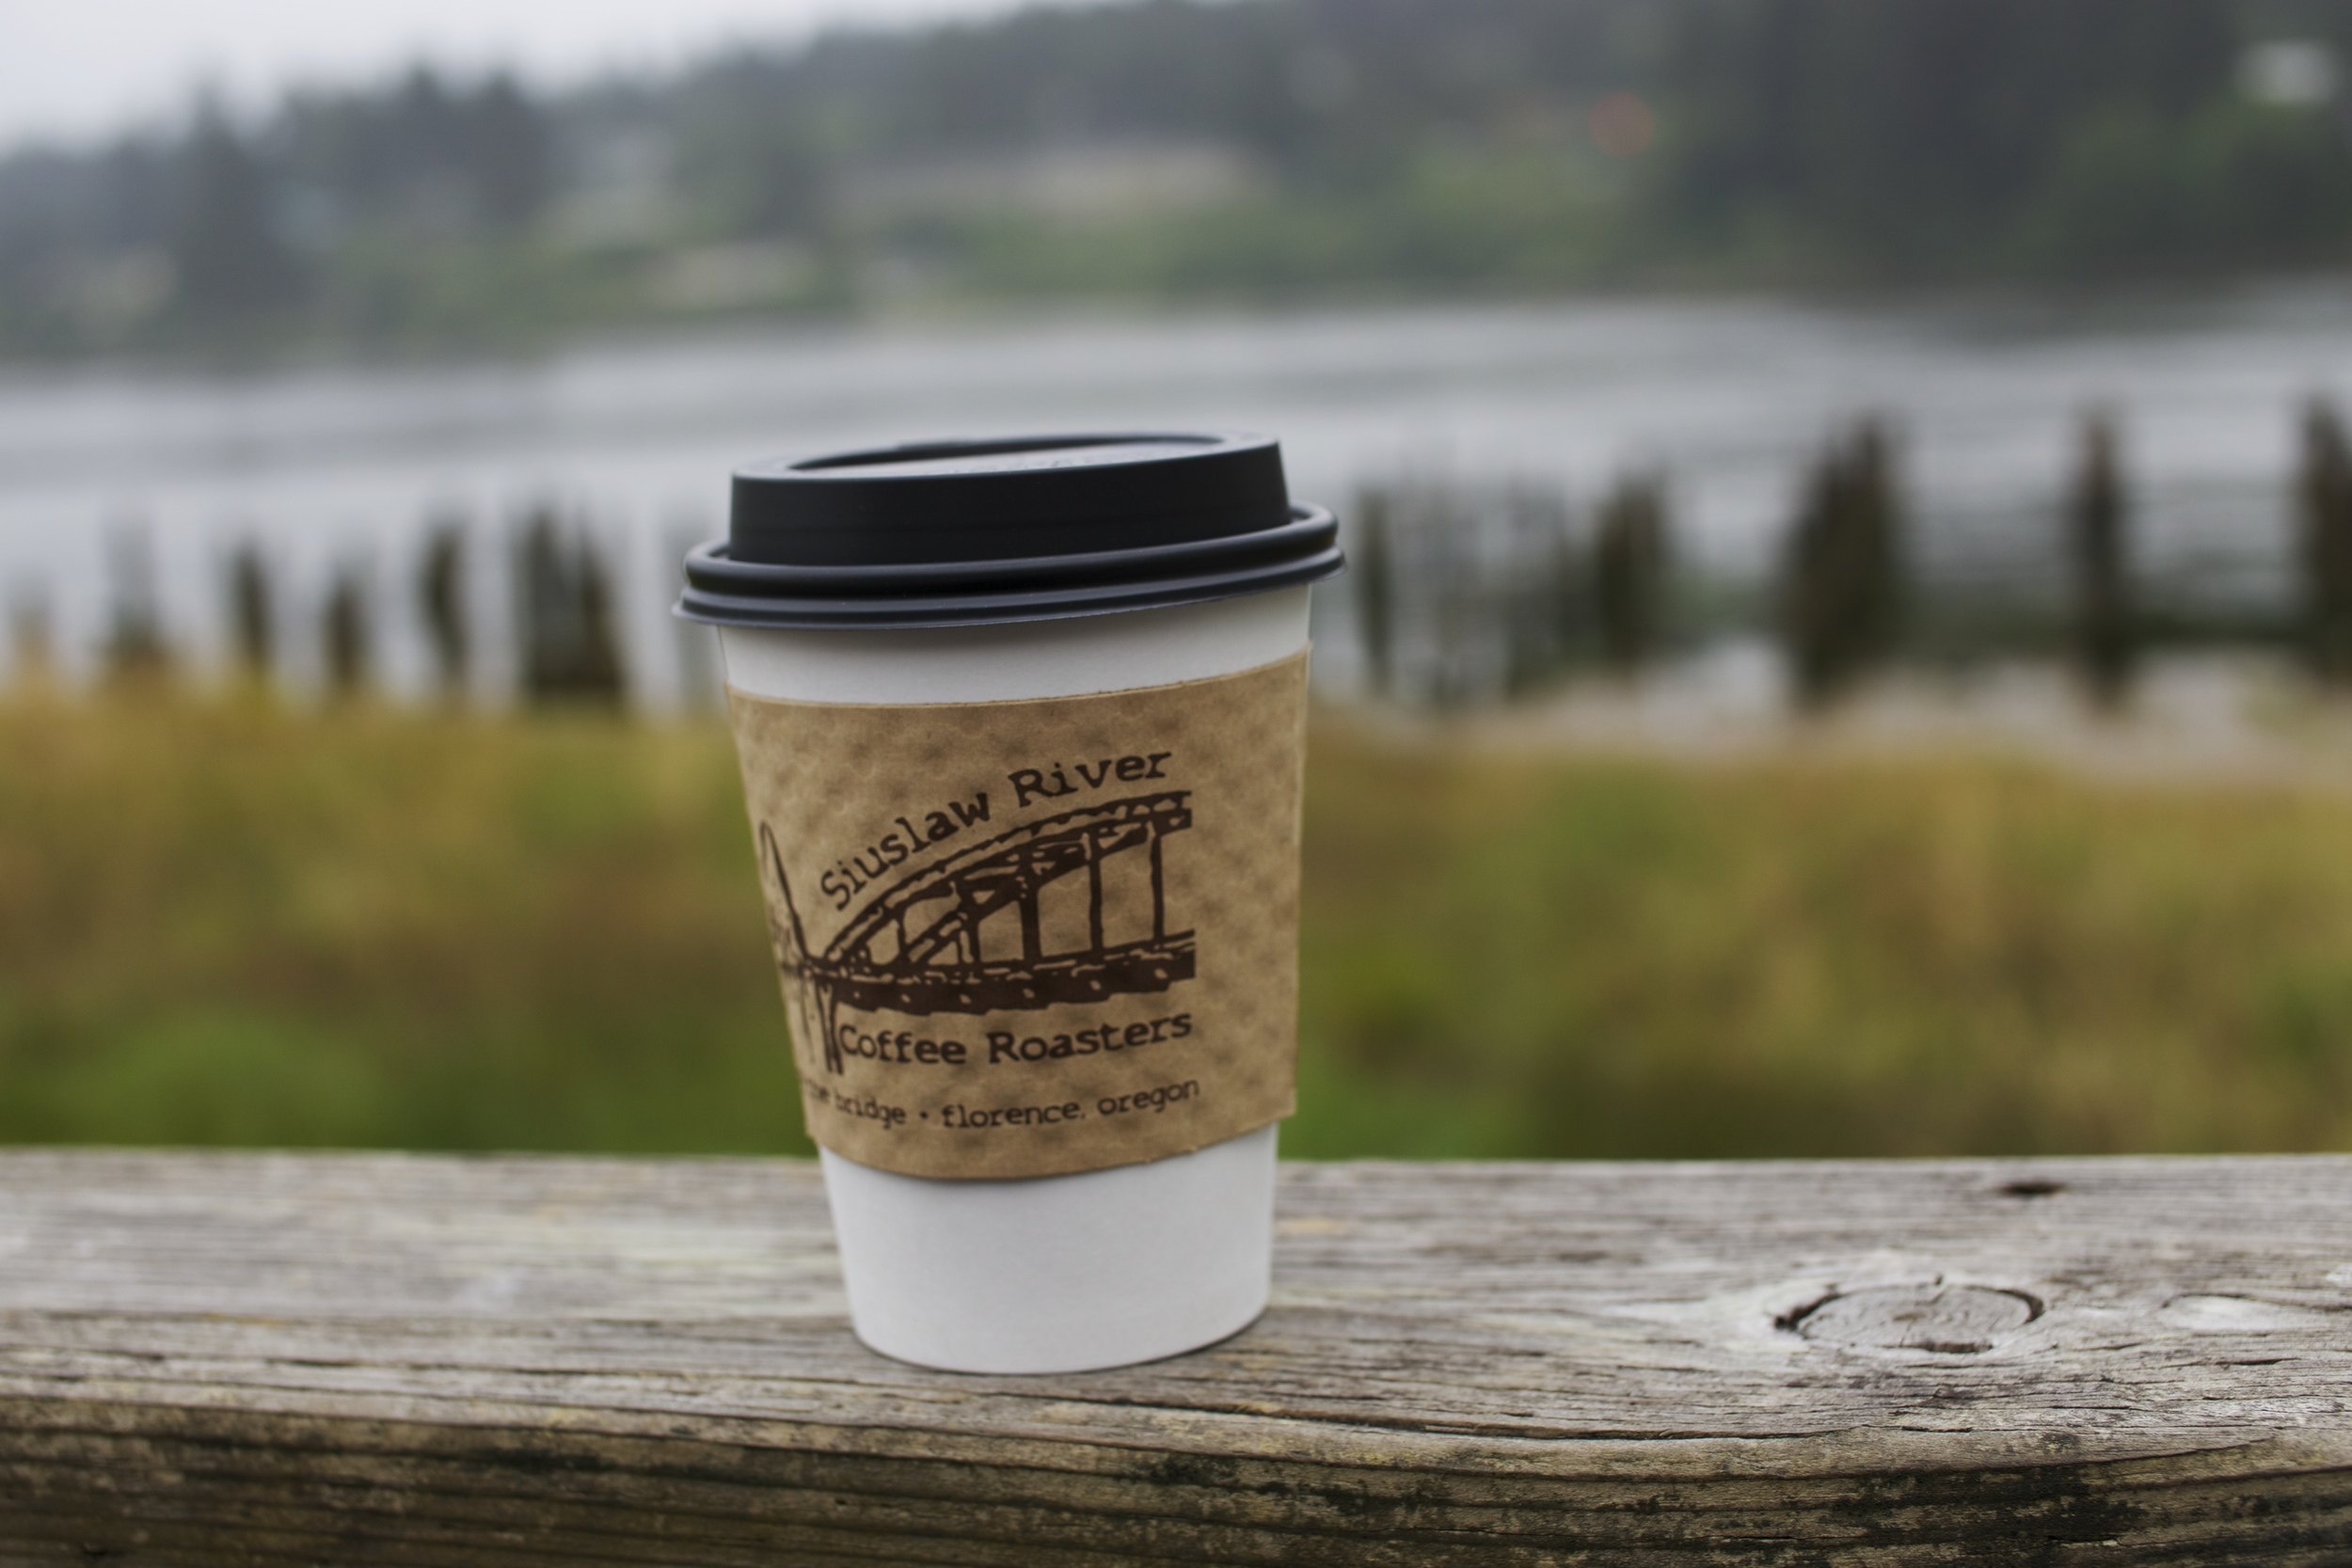 Siuslaw River Coffee Roasters